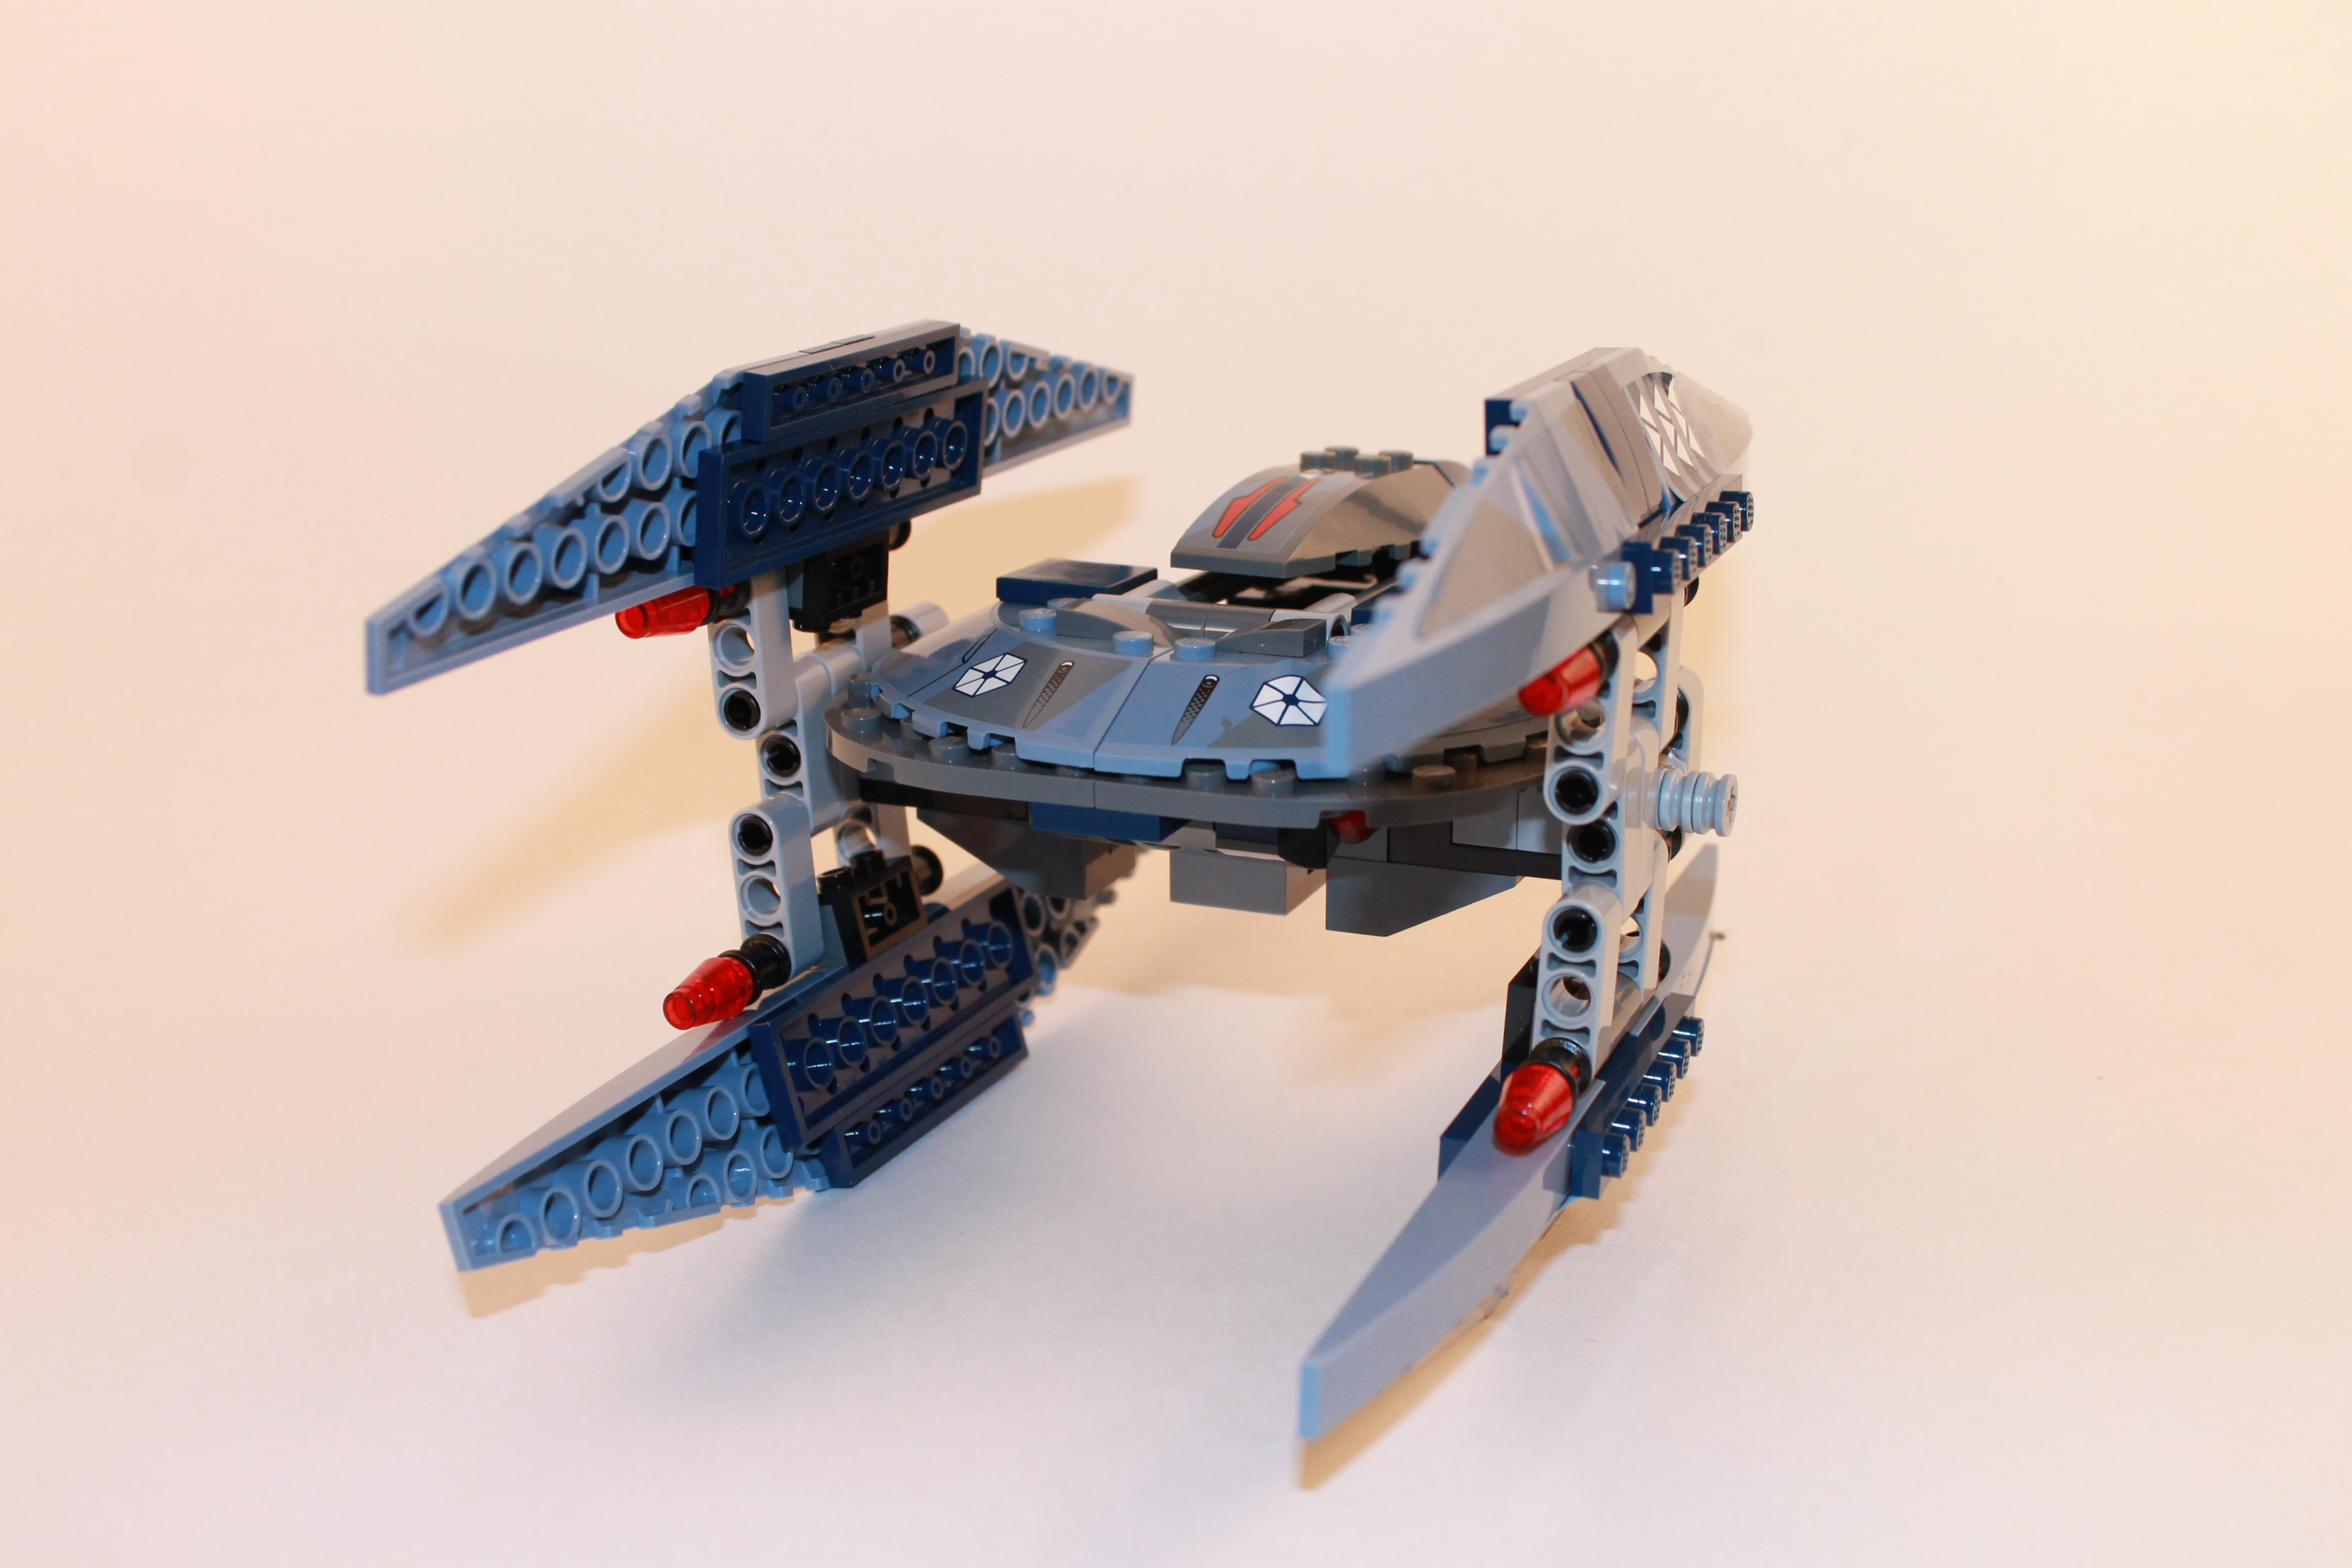 lego star wars vulture droid instructions